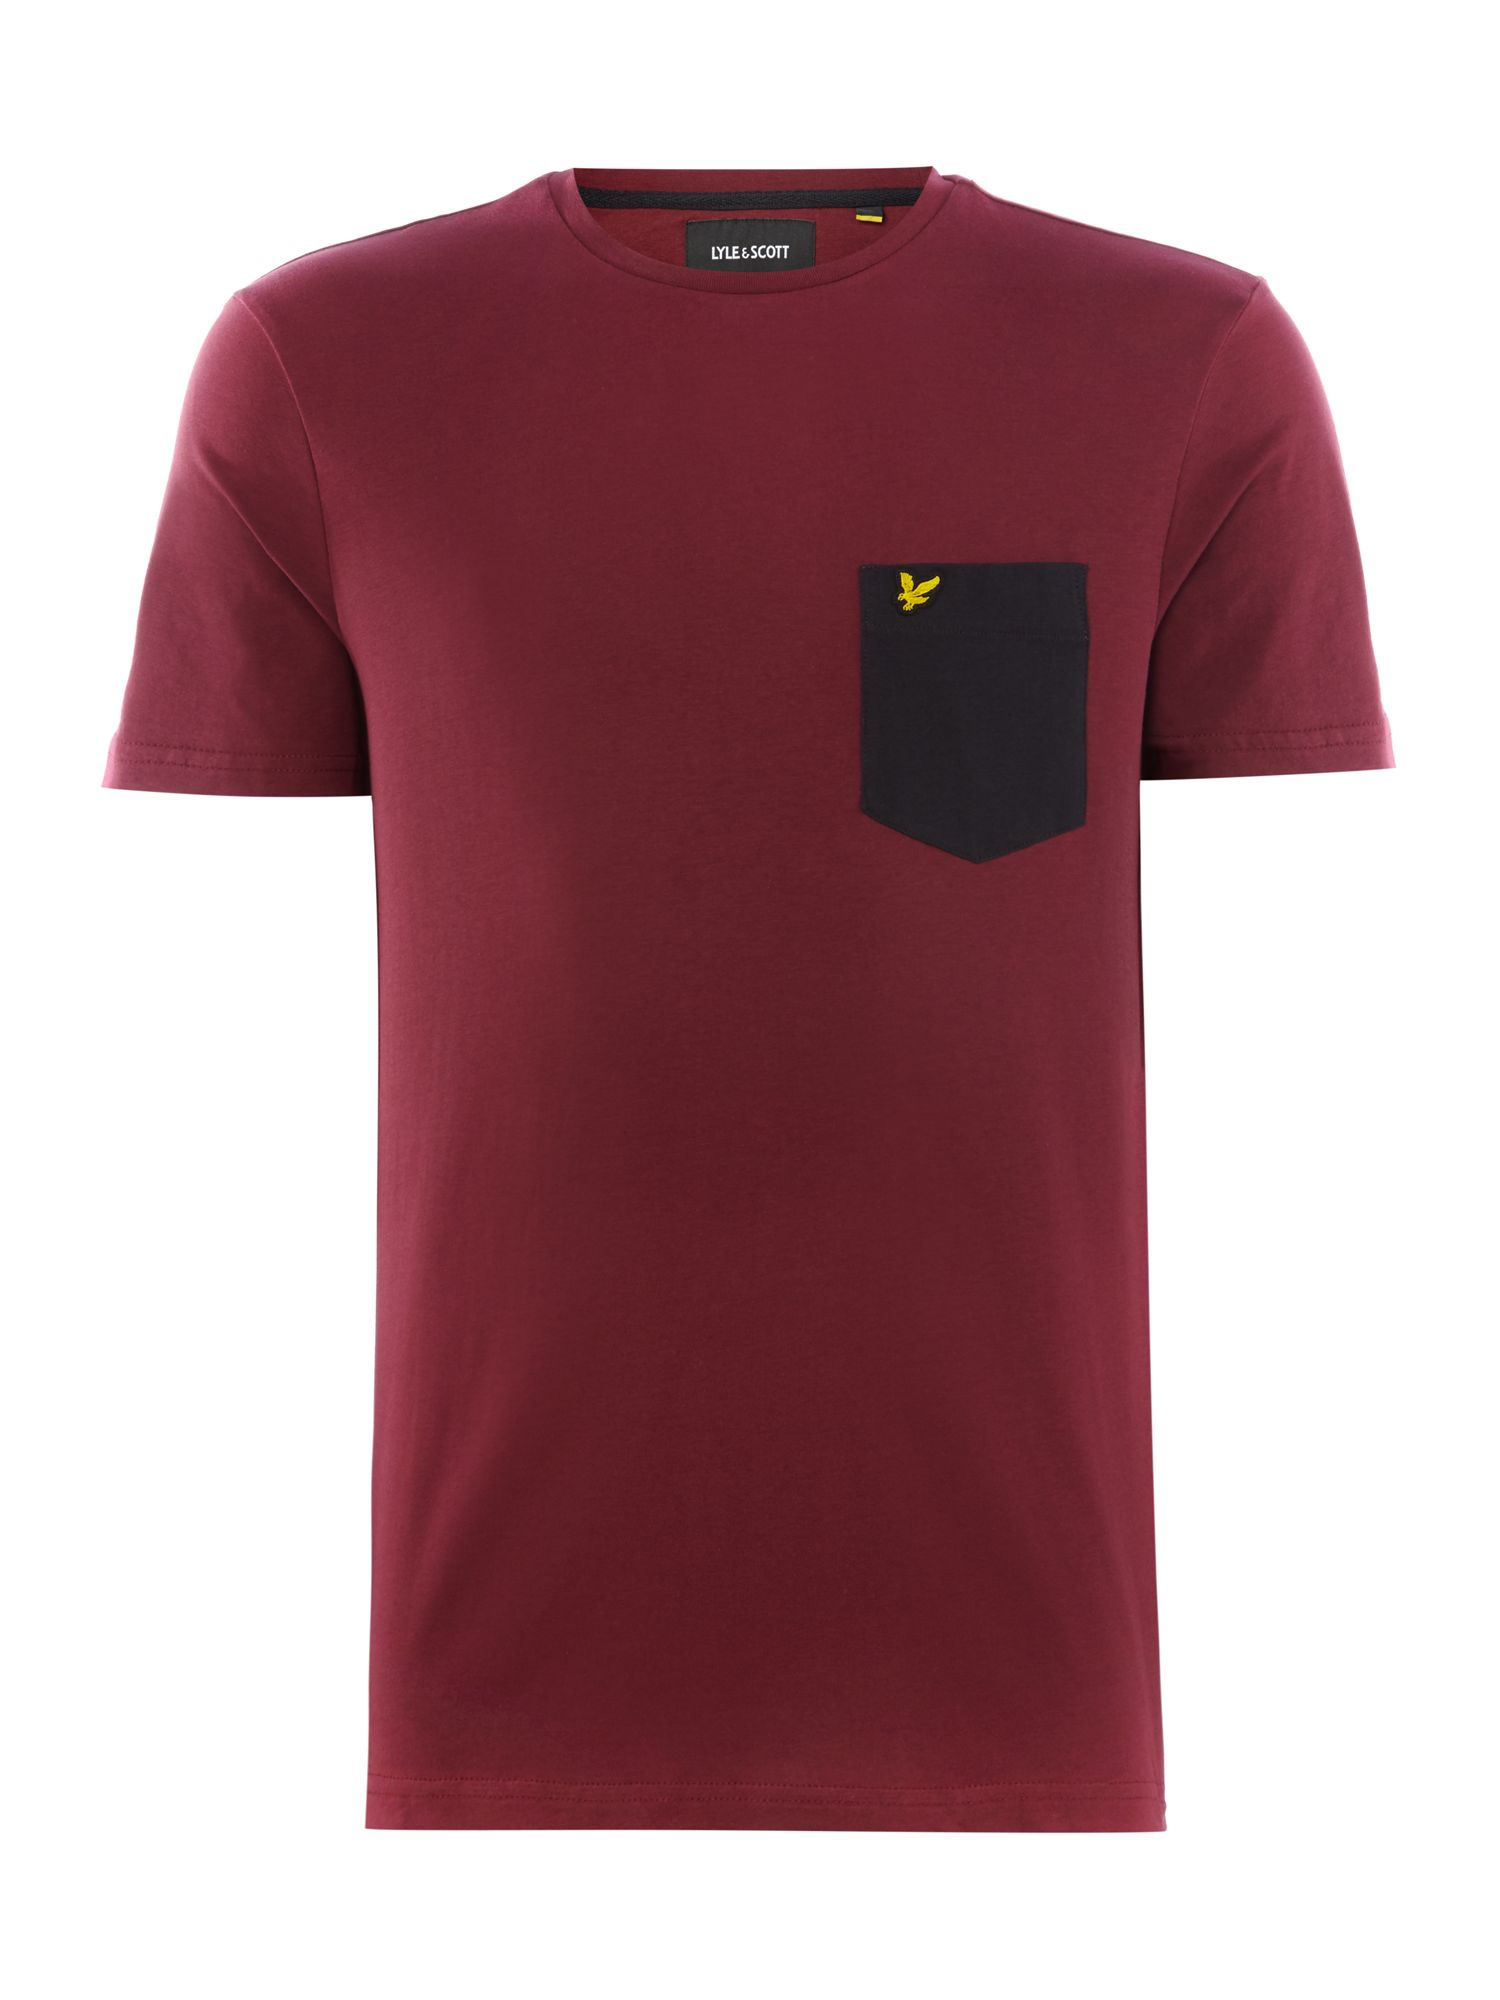 Men's Lyle and Scott Contrast pocket t-tshirt, Claret